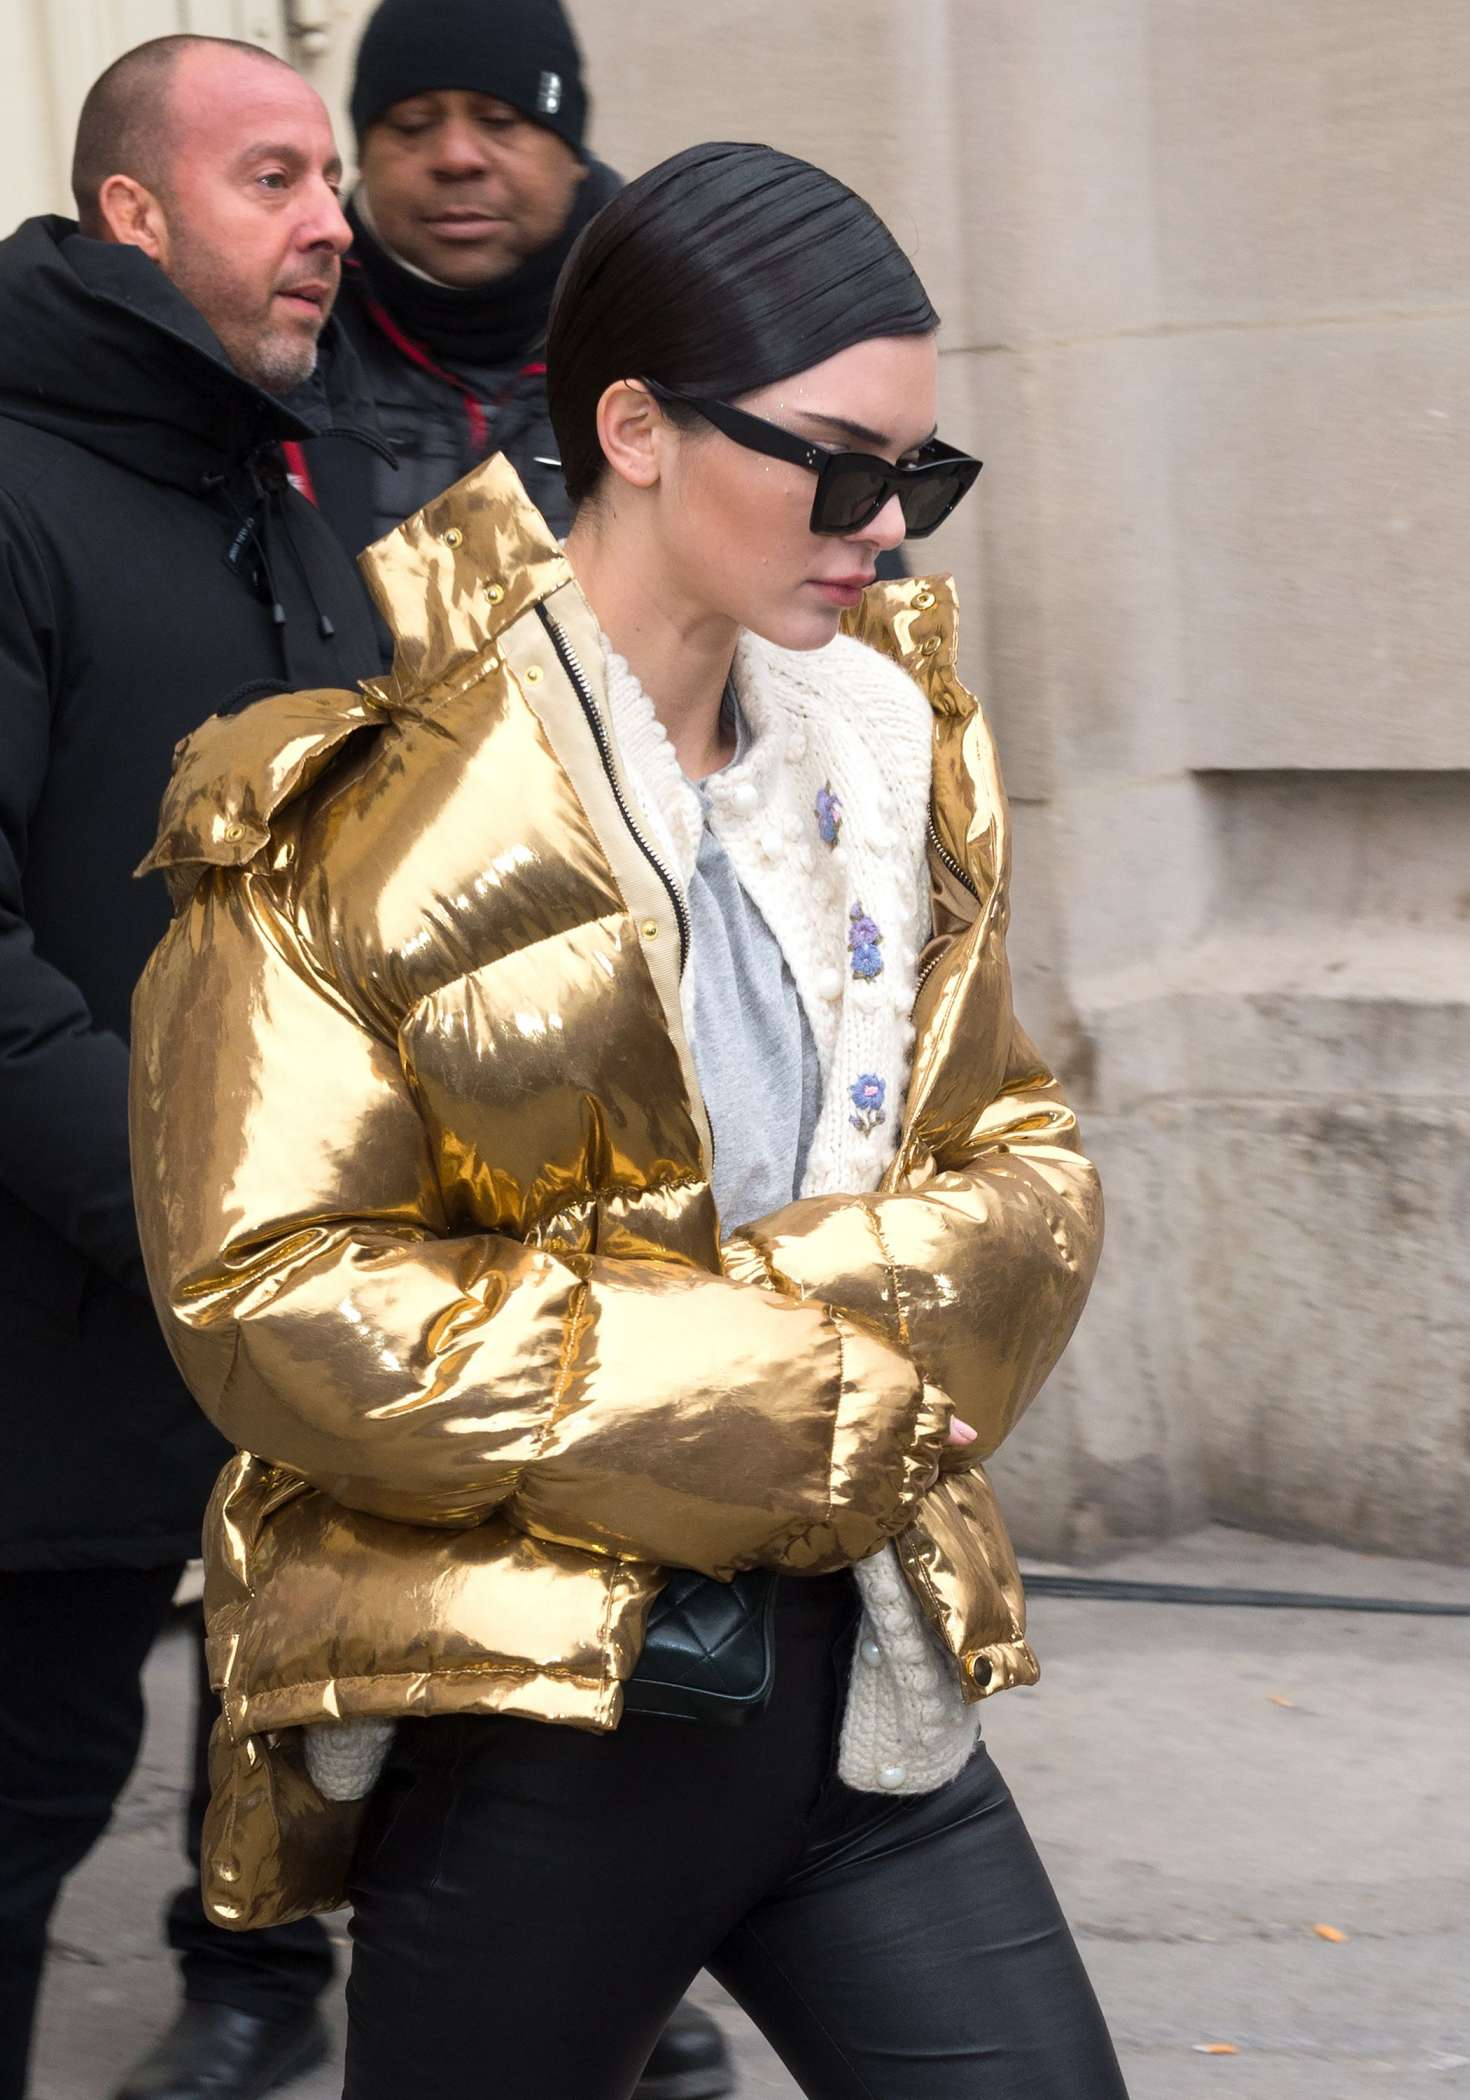 Kendall Jenner 2017 : Kendall Jenner in Gold Jacket out in Paris -08